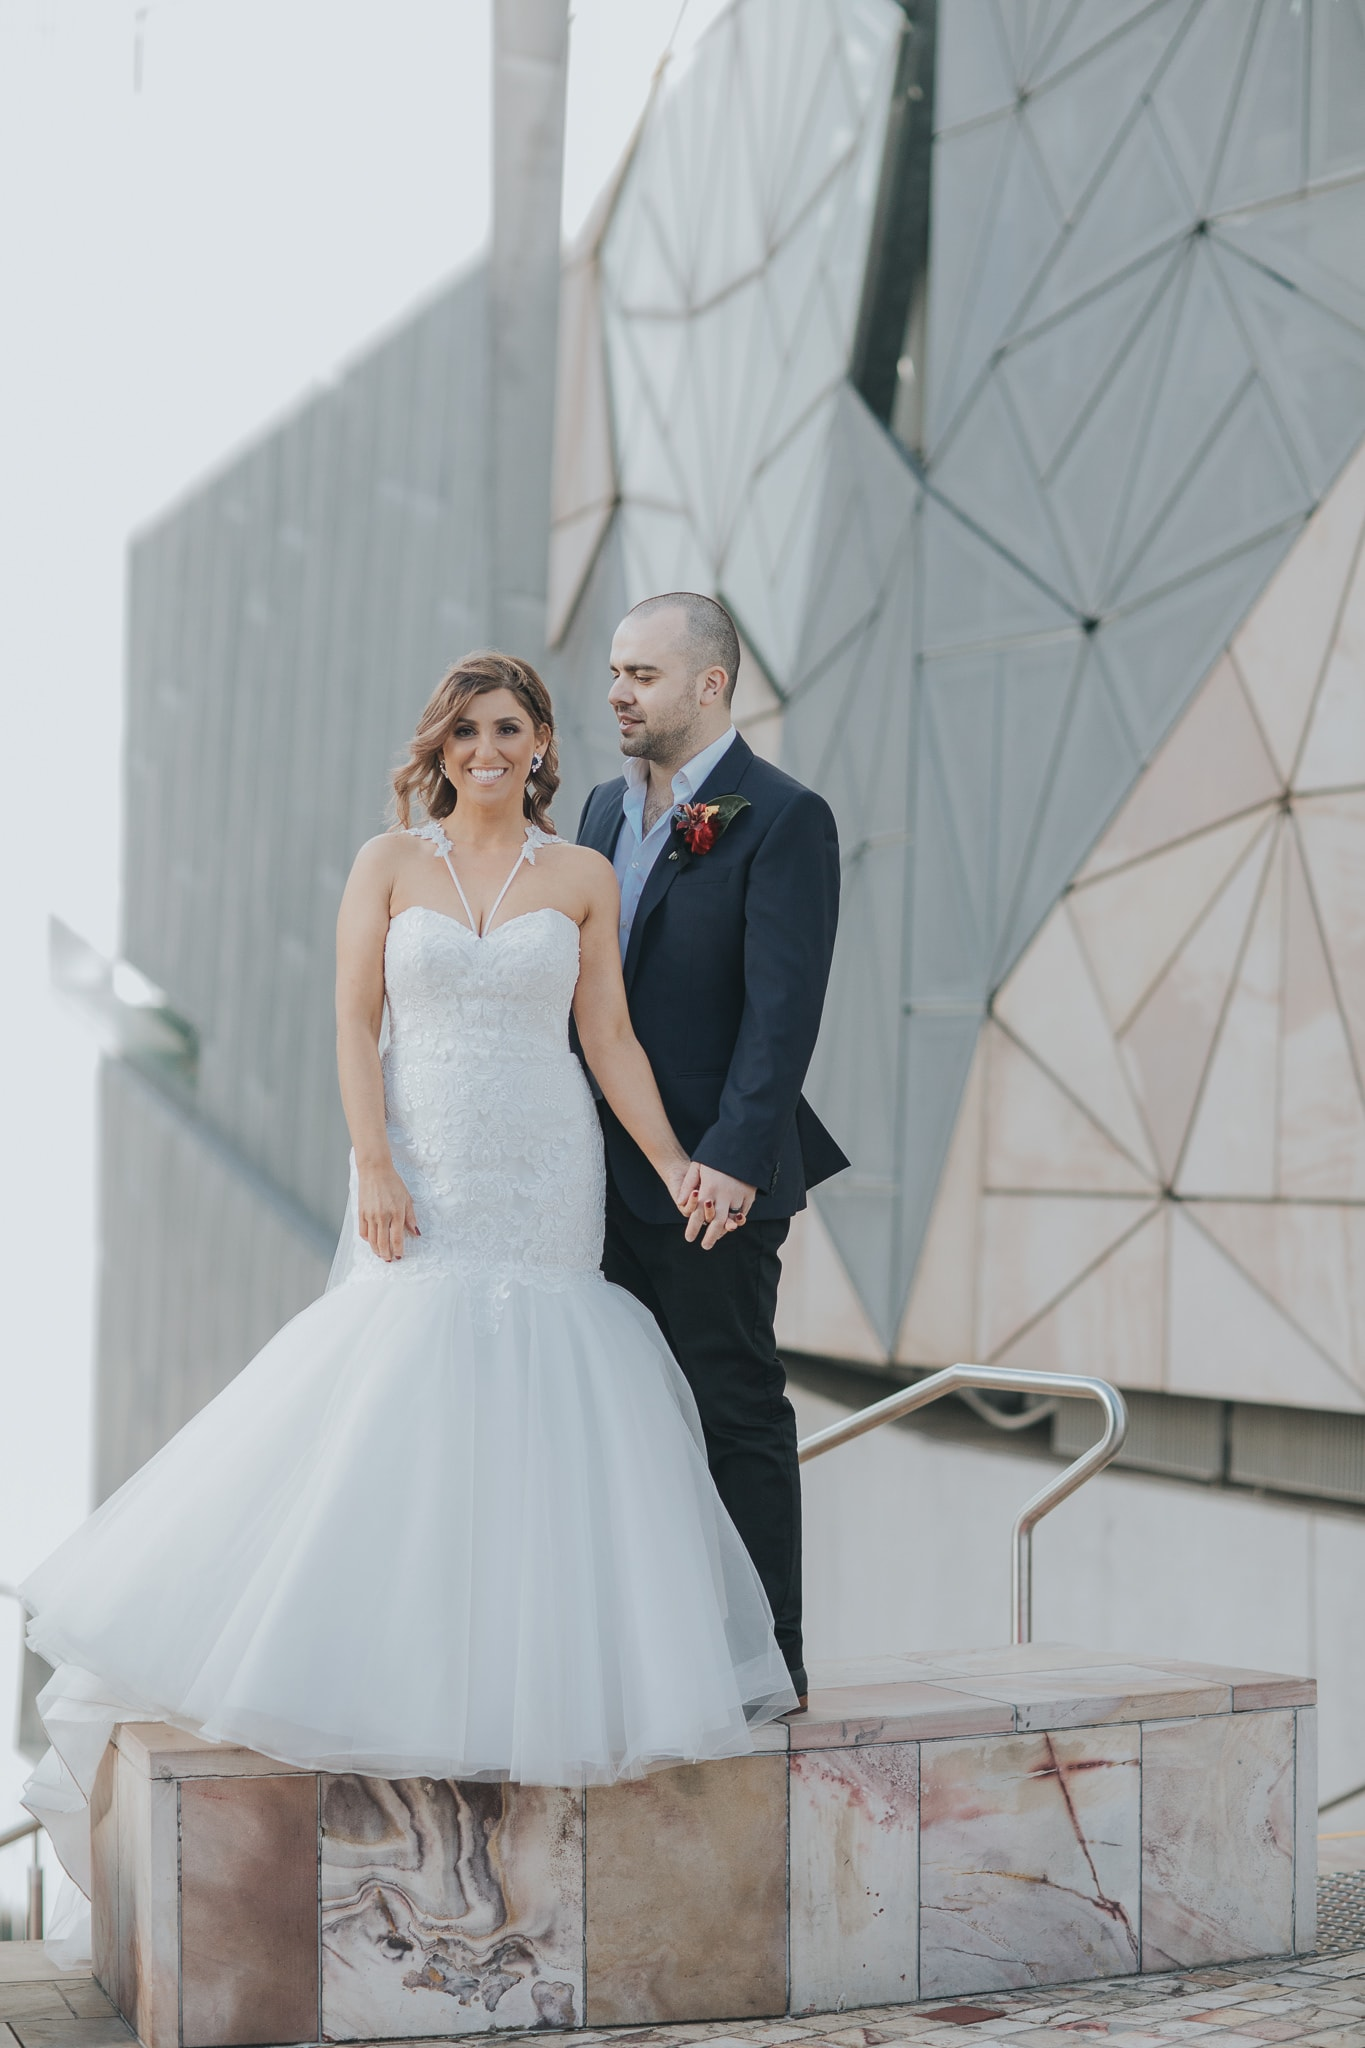 Fedearion Square Wedding Couple - Photographer in Melbourne